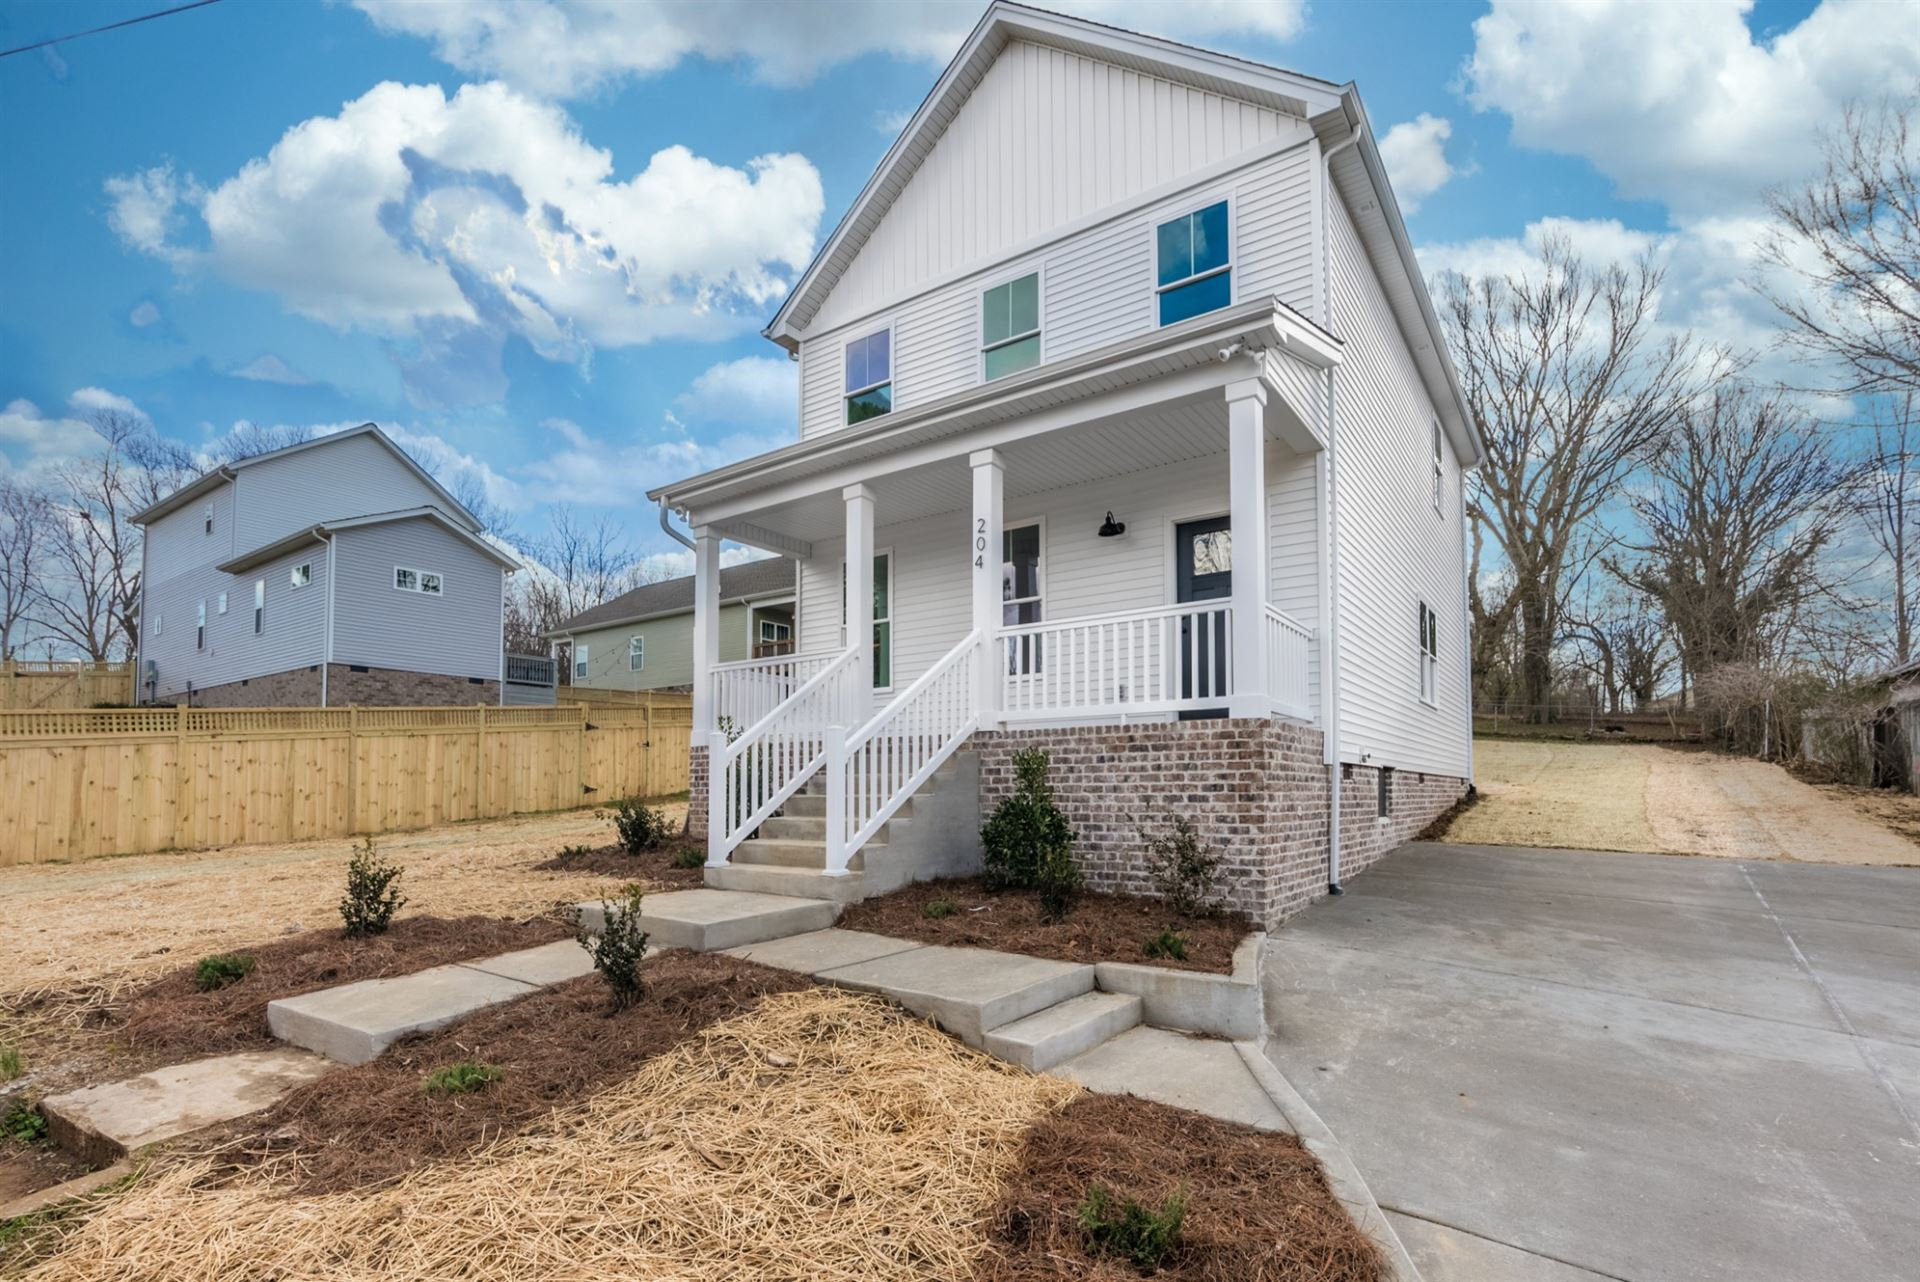 204 2nd Ave W, Springfield, TN 37172 - MLS#: 2220892